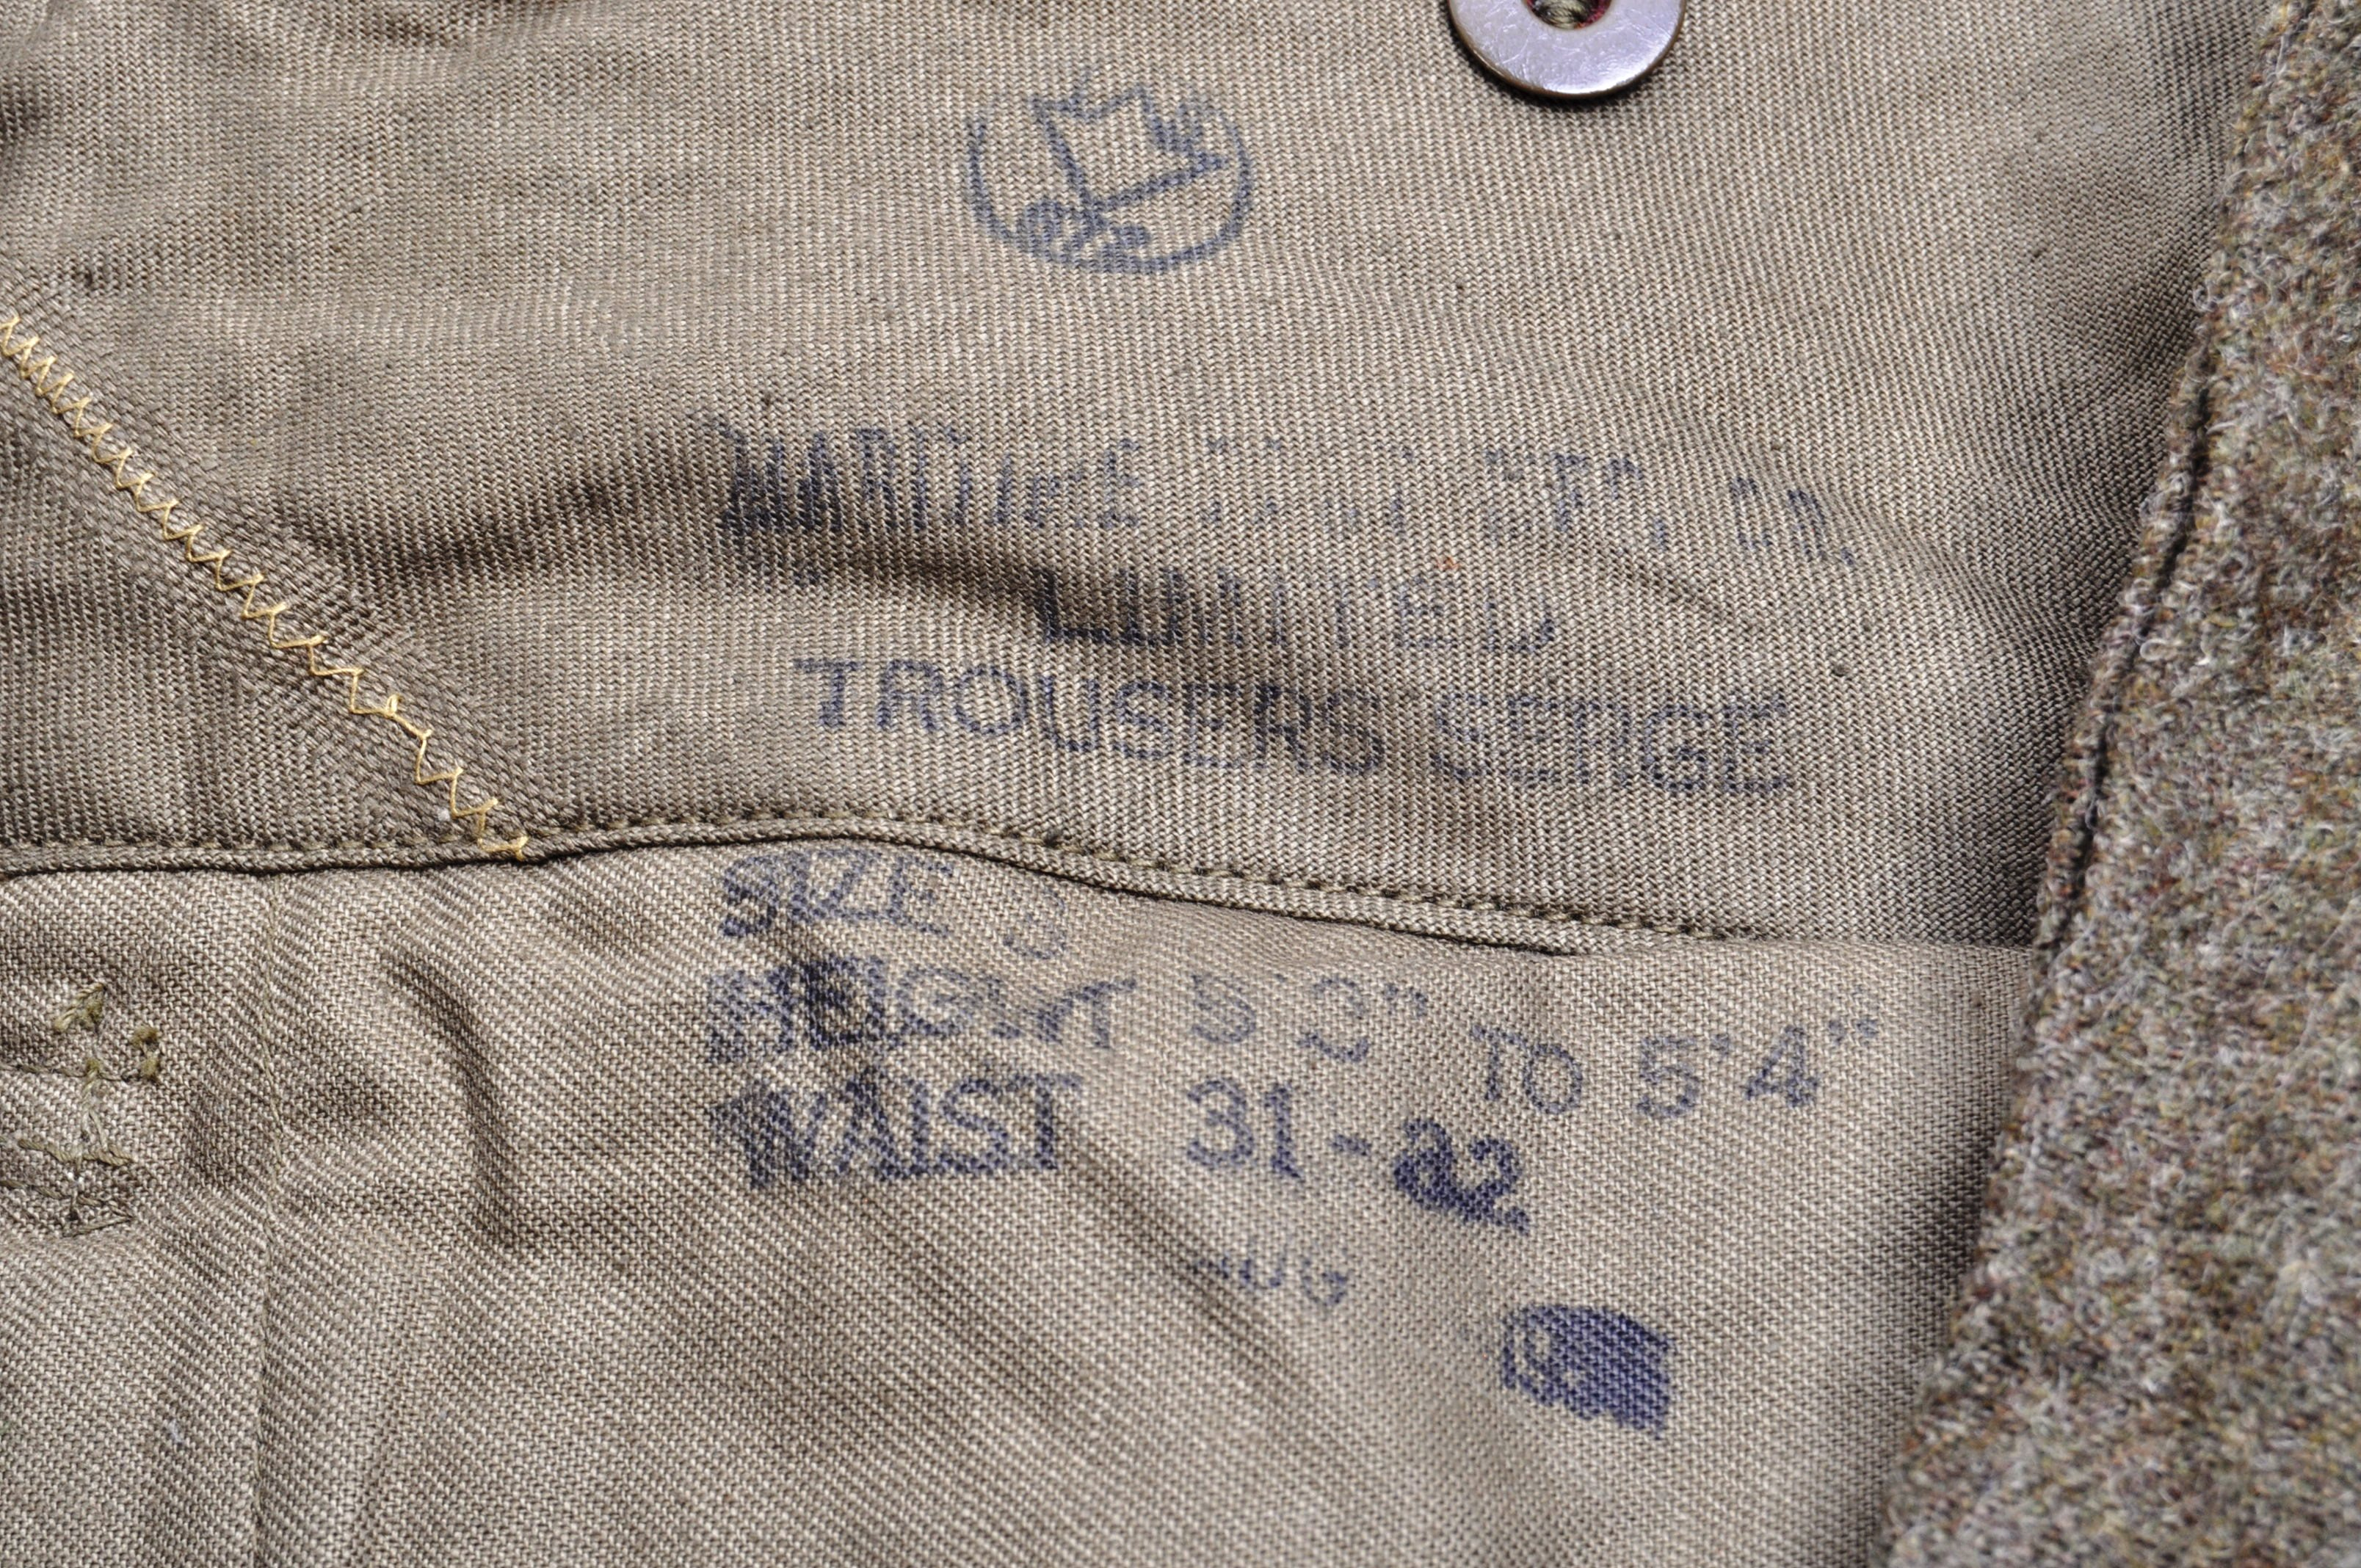 WWII SECOND WORLD WAR INTEREST - BRITISH ARMY TROUSERS - Image 3 of 7